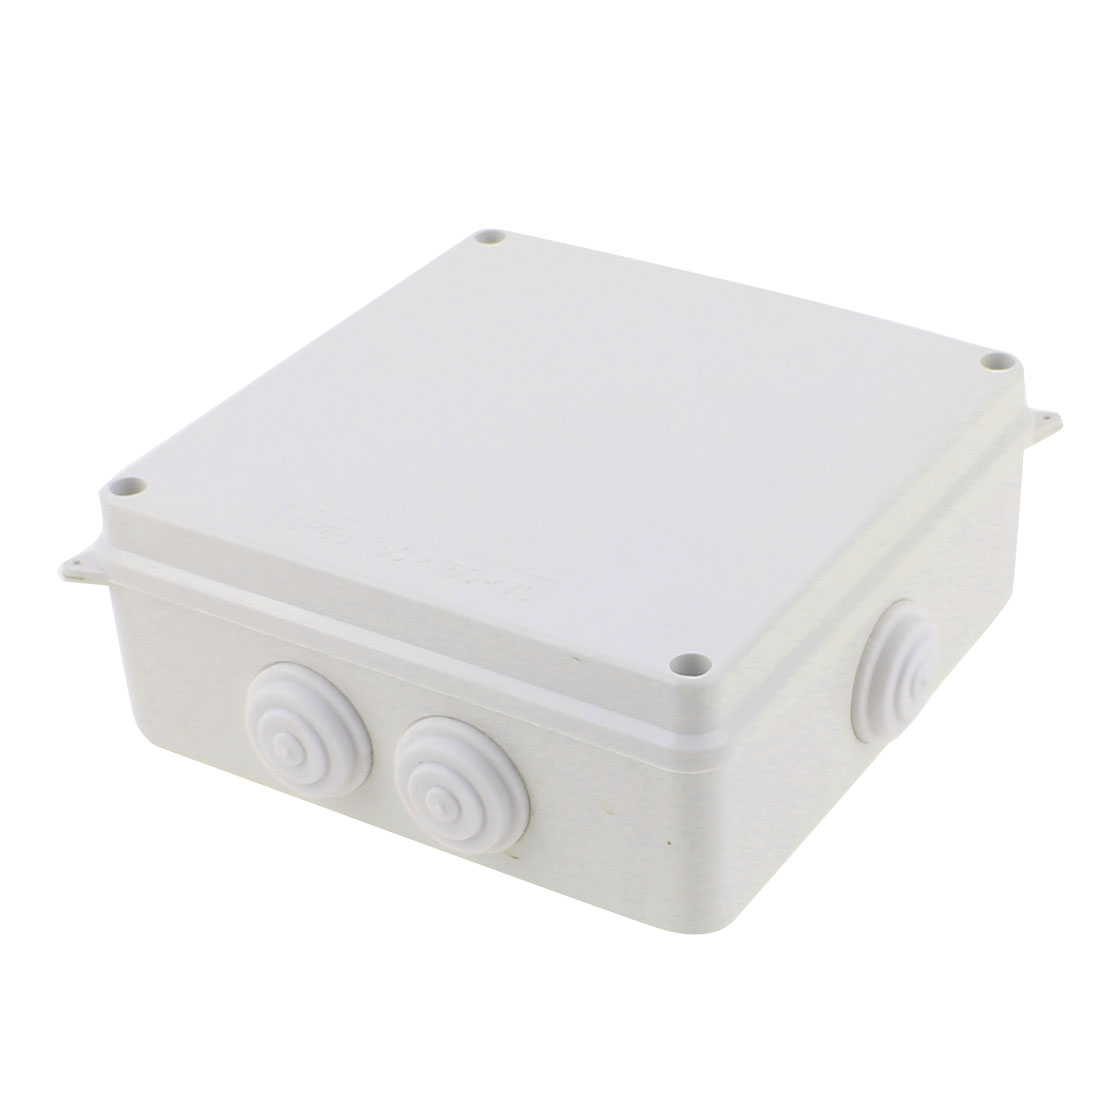 150 x 150 x 60mm Dustproof IP65 Junction Box DIY Sealed Connecting Box Enclosure